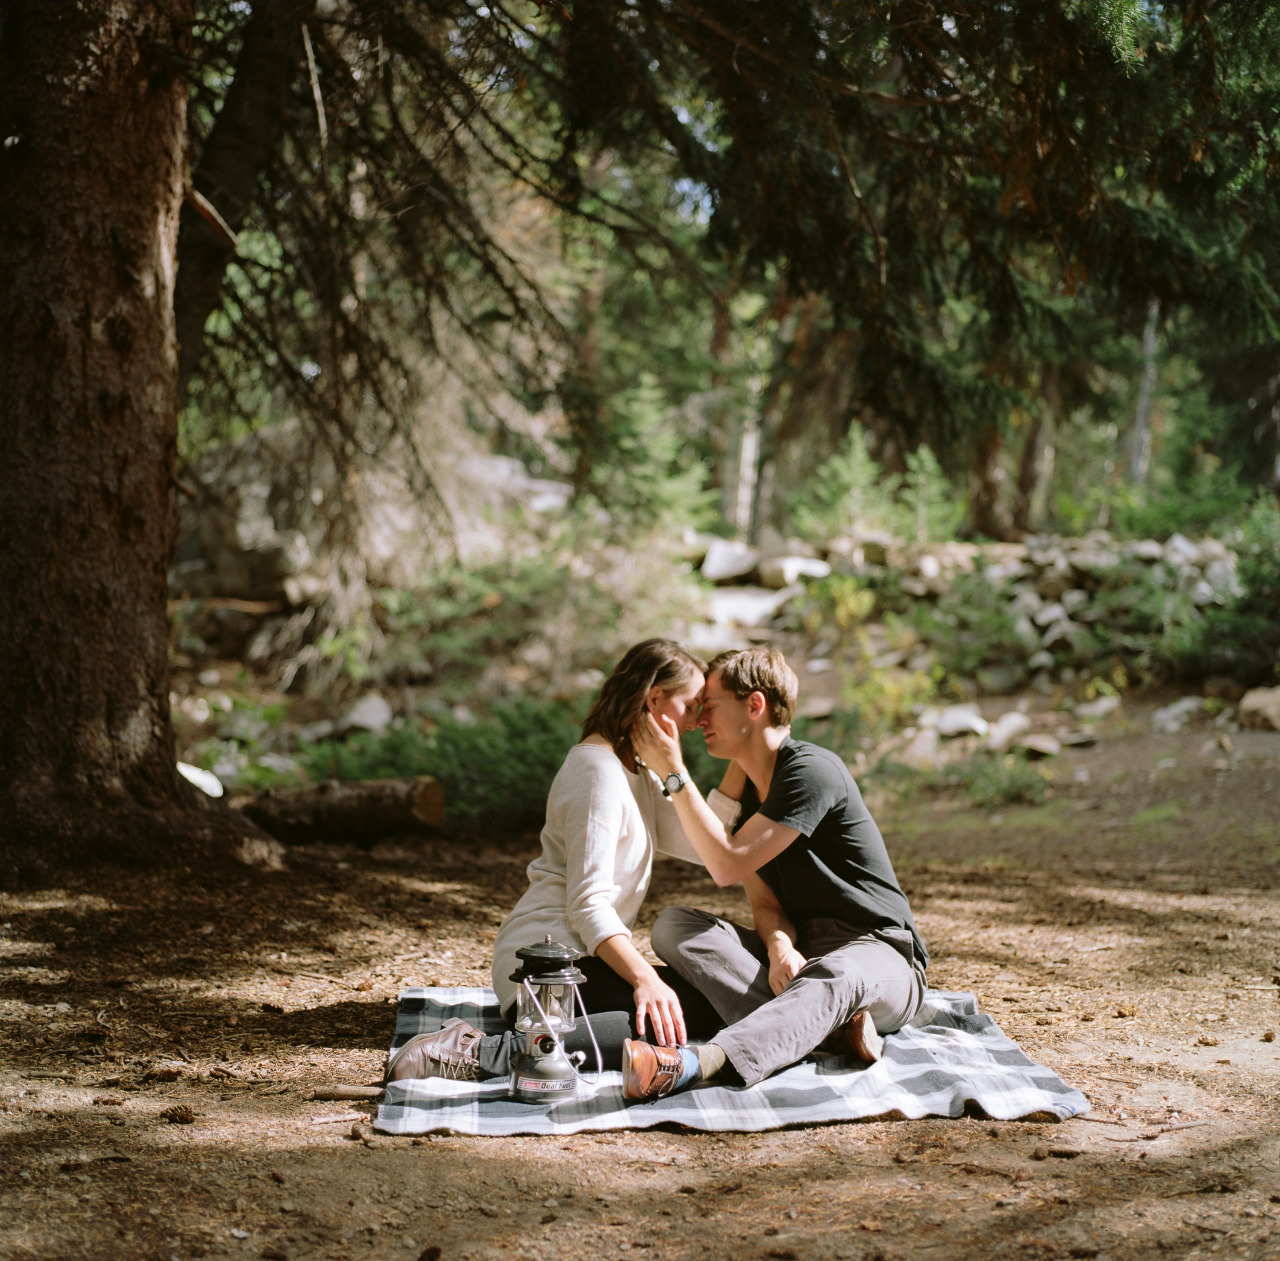 Jennifer and Adam, my dearest friend and her new fiancée.   Kodak Portra 160 / Hasselblad 500 CM